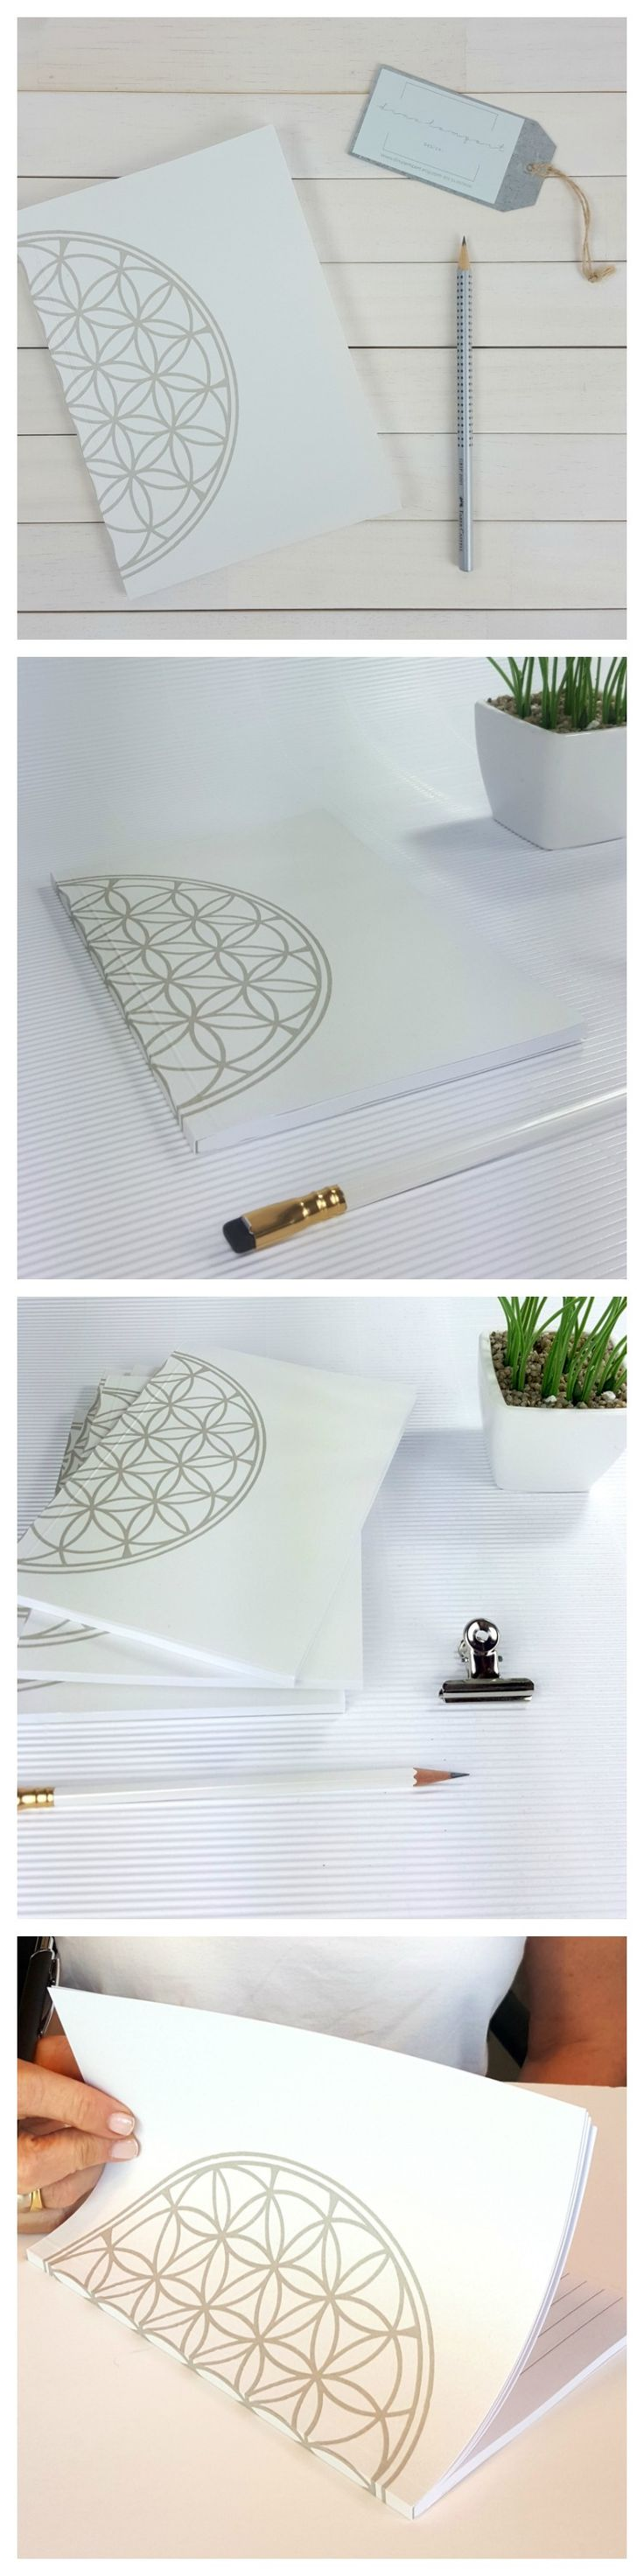 Back To School Flower of life A5 notebook, school stationary personal notebook, office supplies college notebook, yoga gift paper lover gift